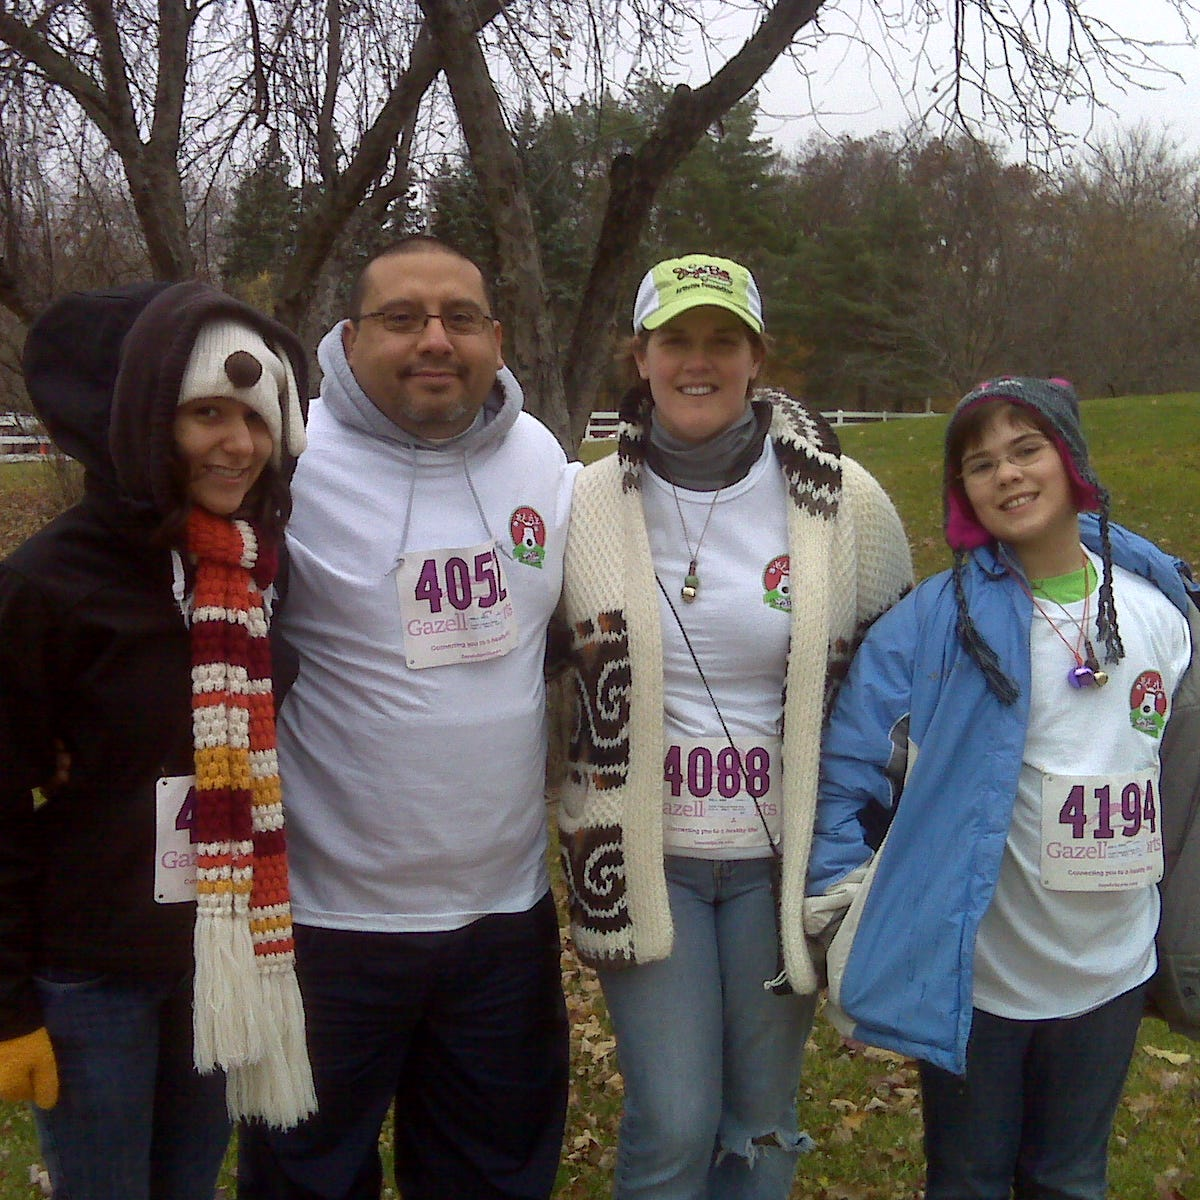 Bonnie Jean Feldkamp and her family at the Jingle Bell Arthritis 5K in 2010, the same year she was diagnosed.